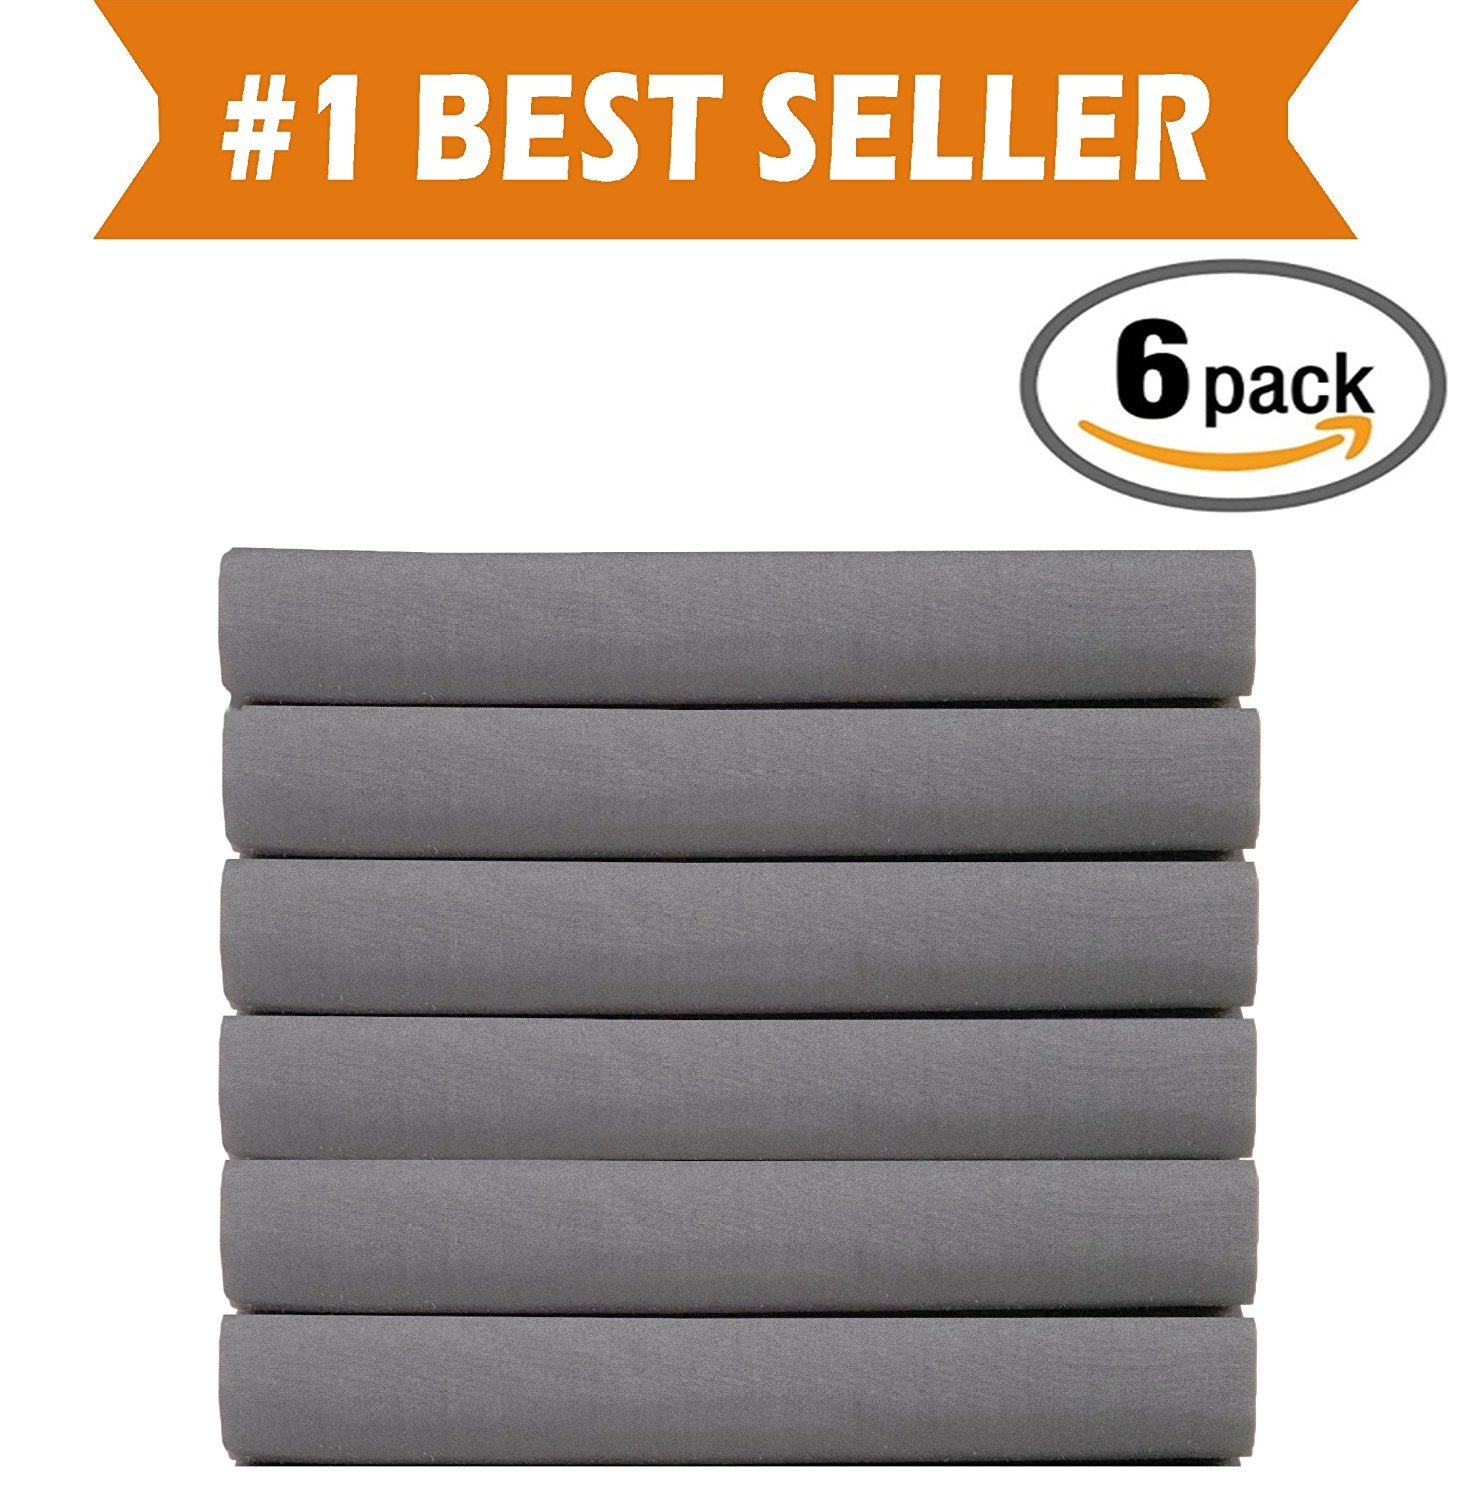 (6-PACK) Luxury Fitted Sheets! PREMIUM HOTEL QUALITY Elegant Comfort Wrinkle-Free 1500 Thread Count Egyptian Quality 6-PACK Fitted Sheet with Storage Pockets on Sides, Twin/Twin XL Size, Gray